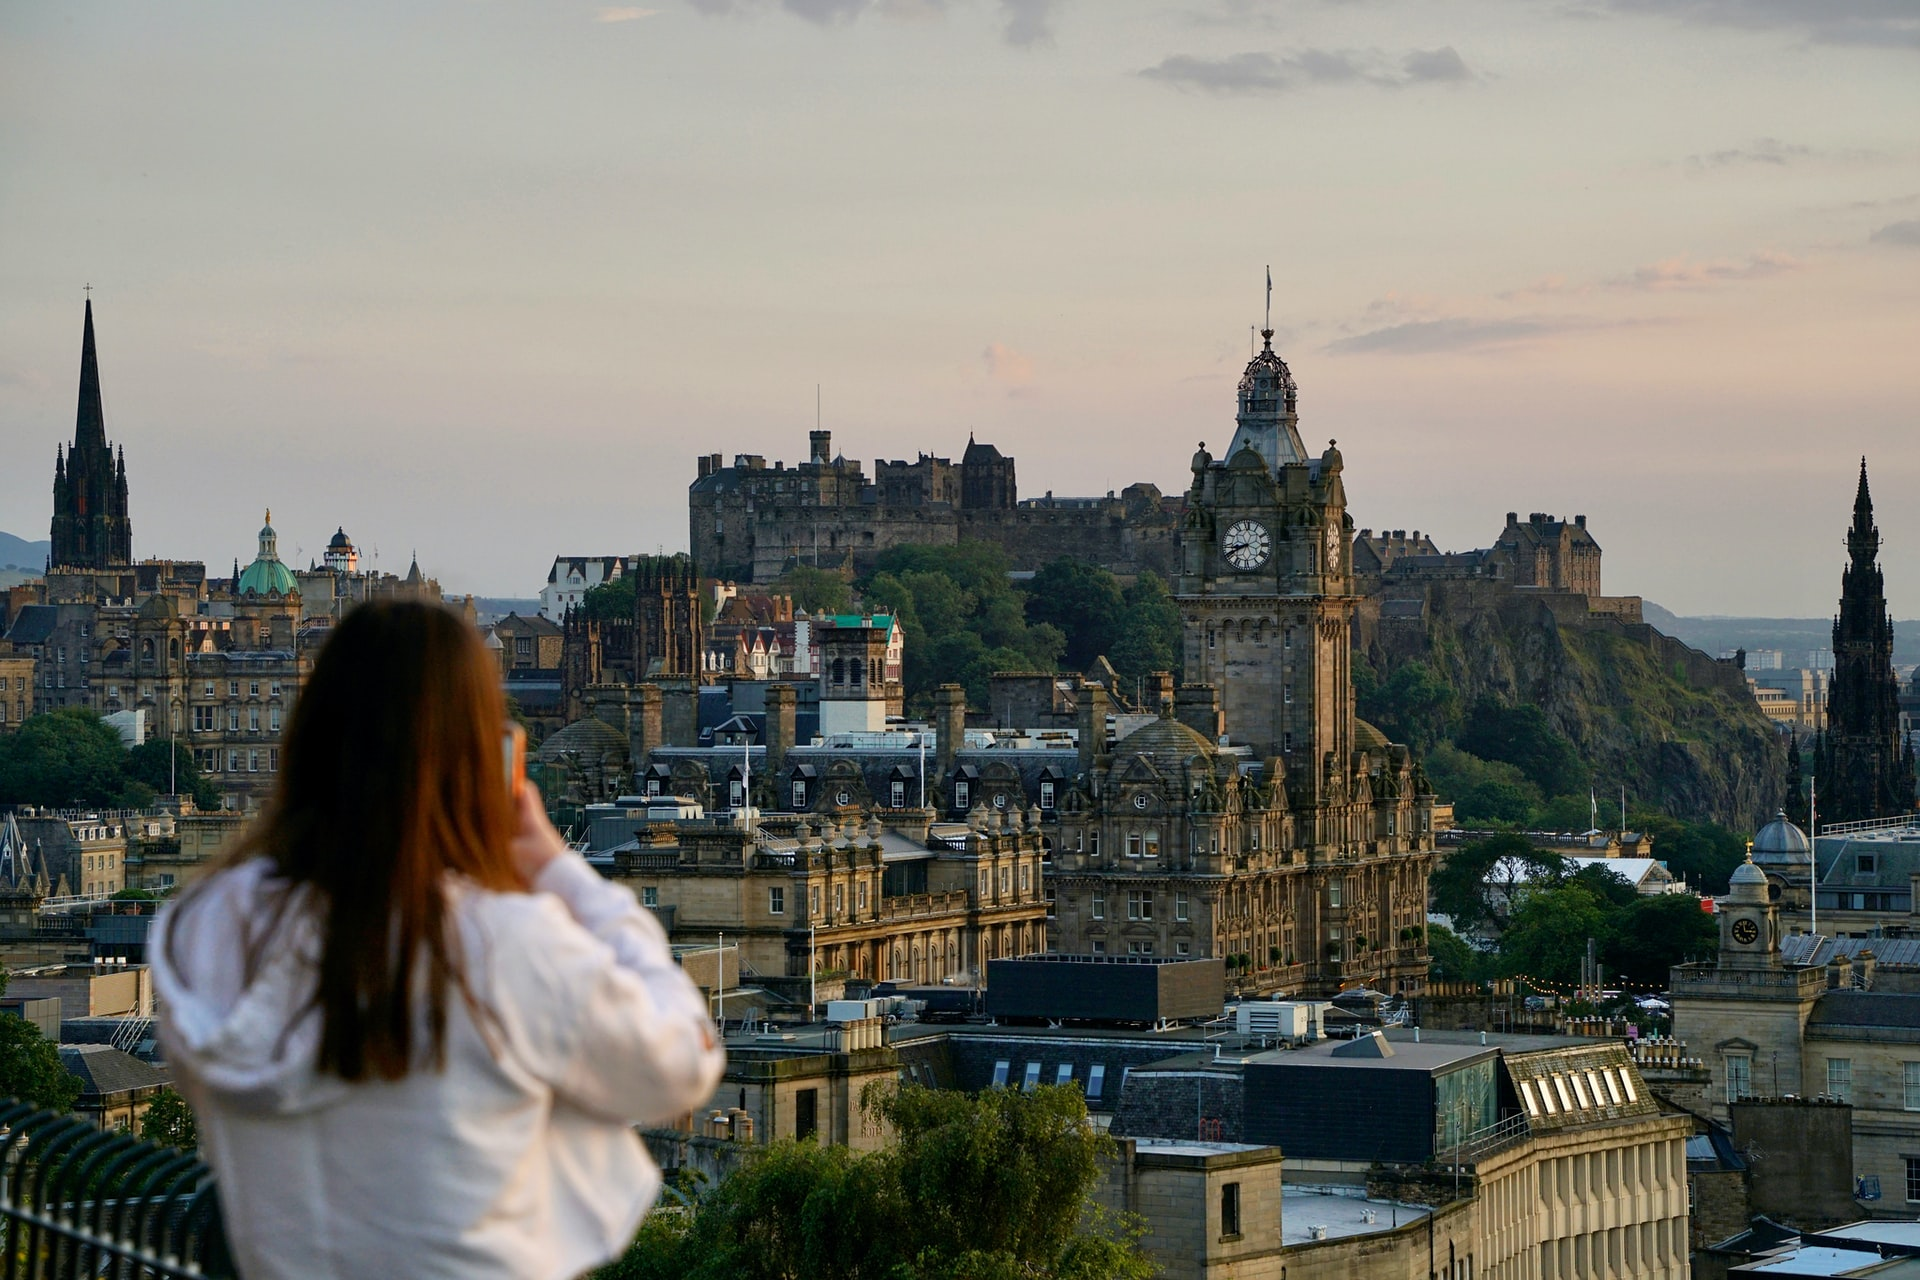 young-woman-taking-photo-of-old-historic-city-from-hill-viewpoint-at-sunset-calton-hill-free-things-to-do-in-edinburgh